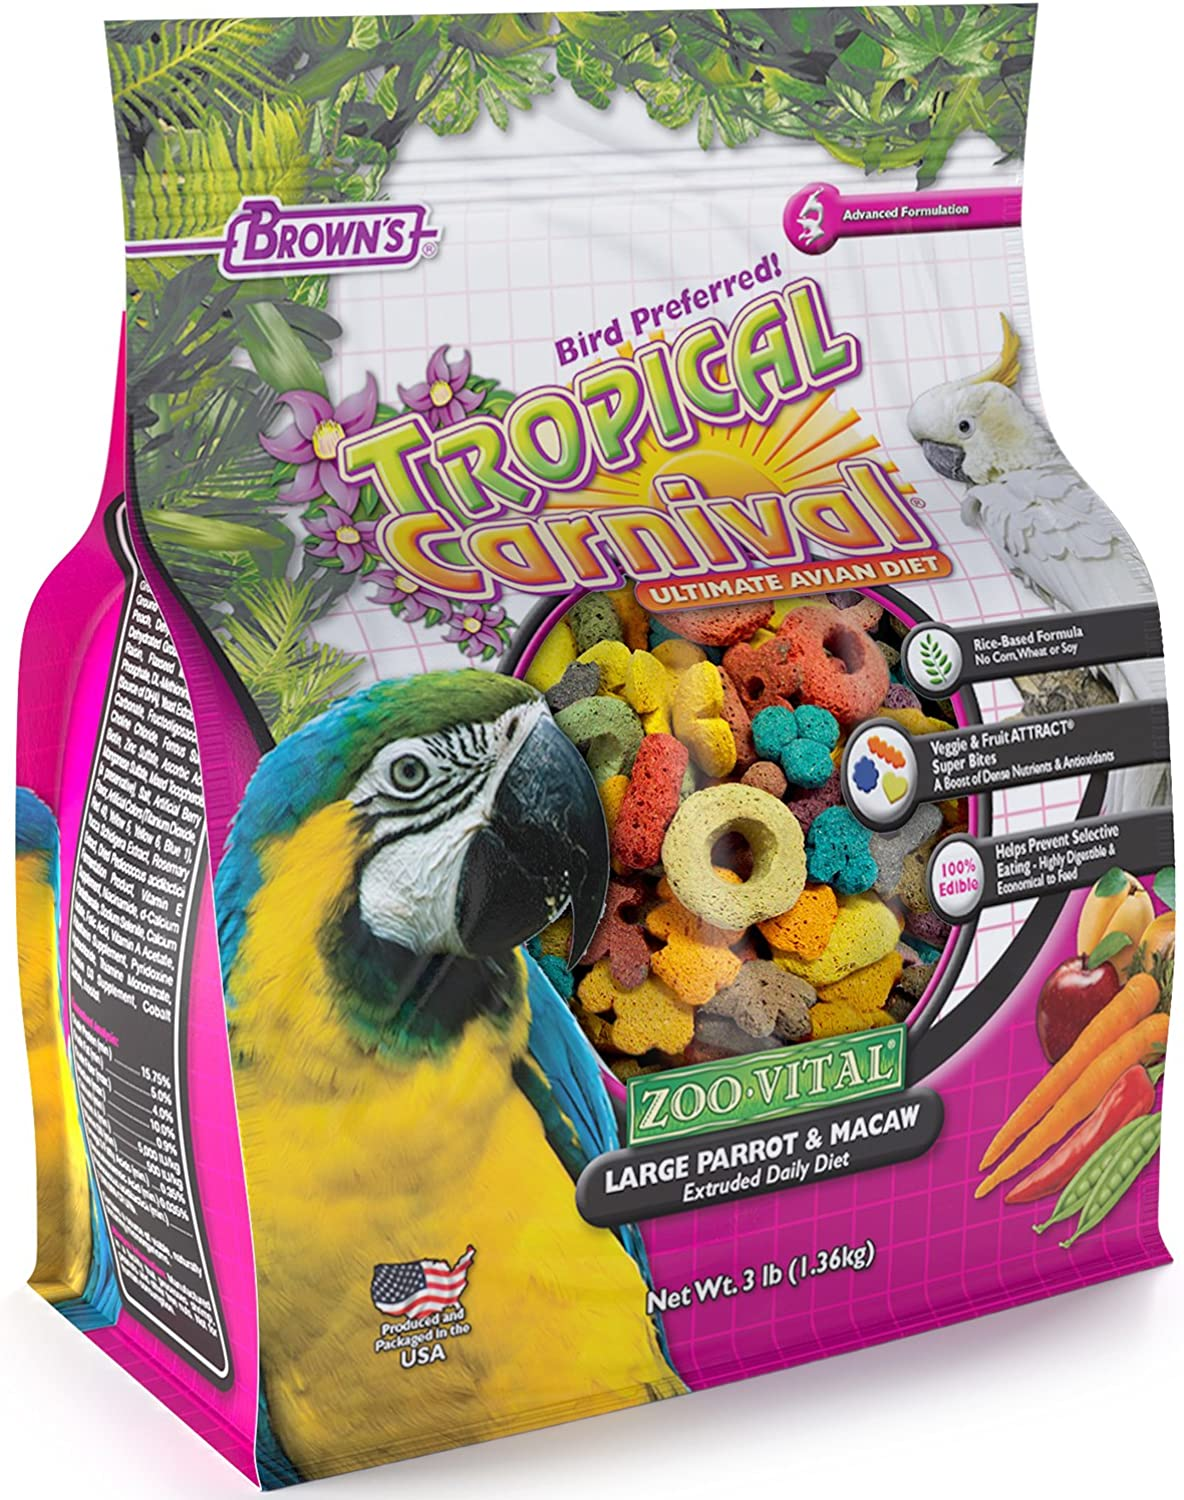 F.M.Brown's Tropical Carnival Zoovital Large Parred & Macaw Extruded Daily Diet, 3 lb